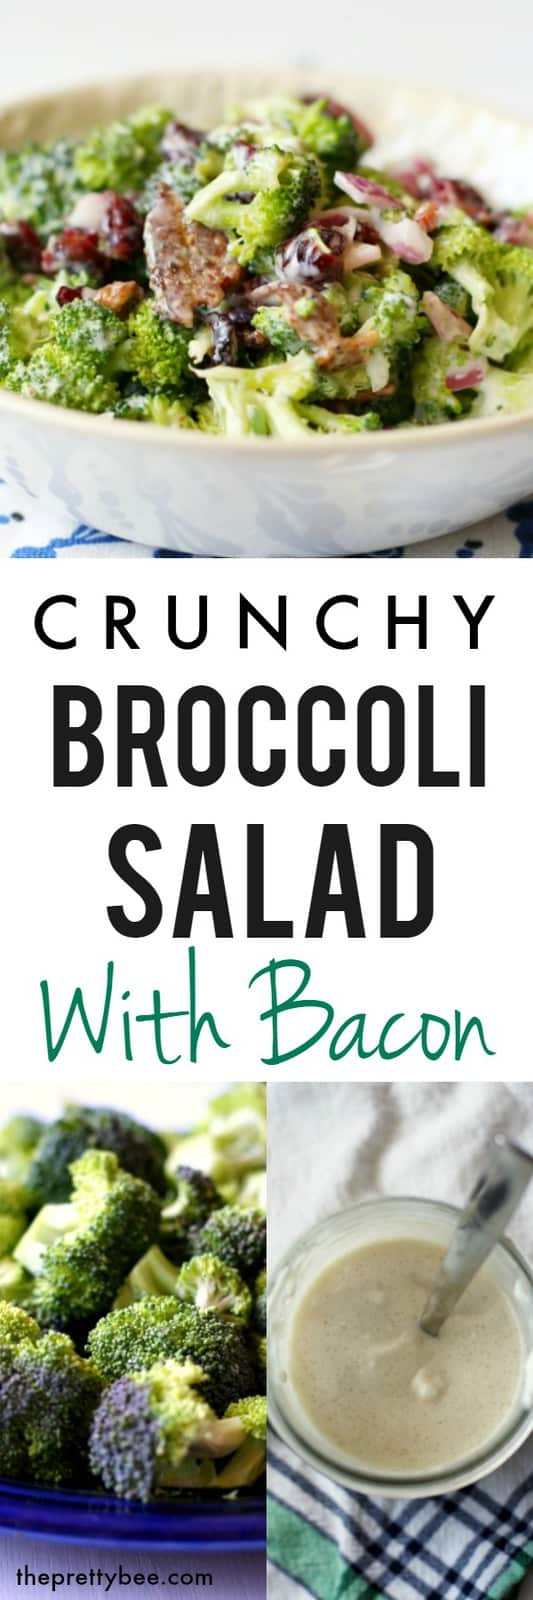 A favorite side dish, this crunchy broccoli salad with bacon is a delicious combination of sweet, salty, and crunchy! #glutenfree #dairyfree #nutfree #salad #broccoli #grainfree